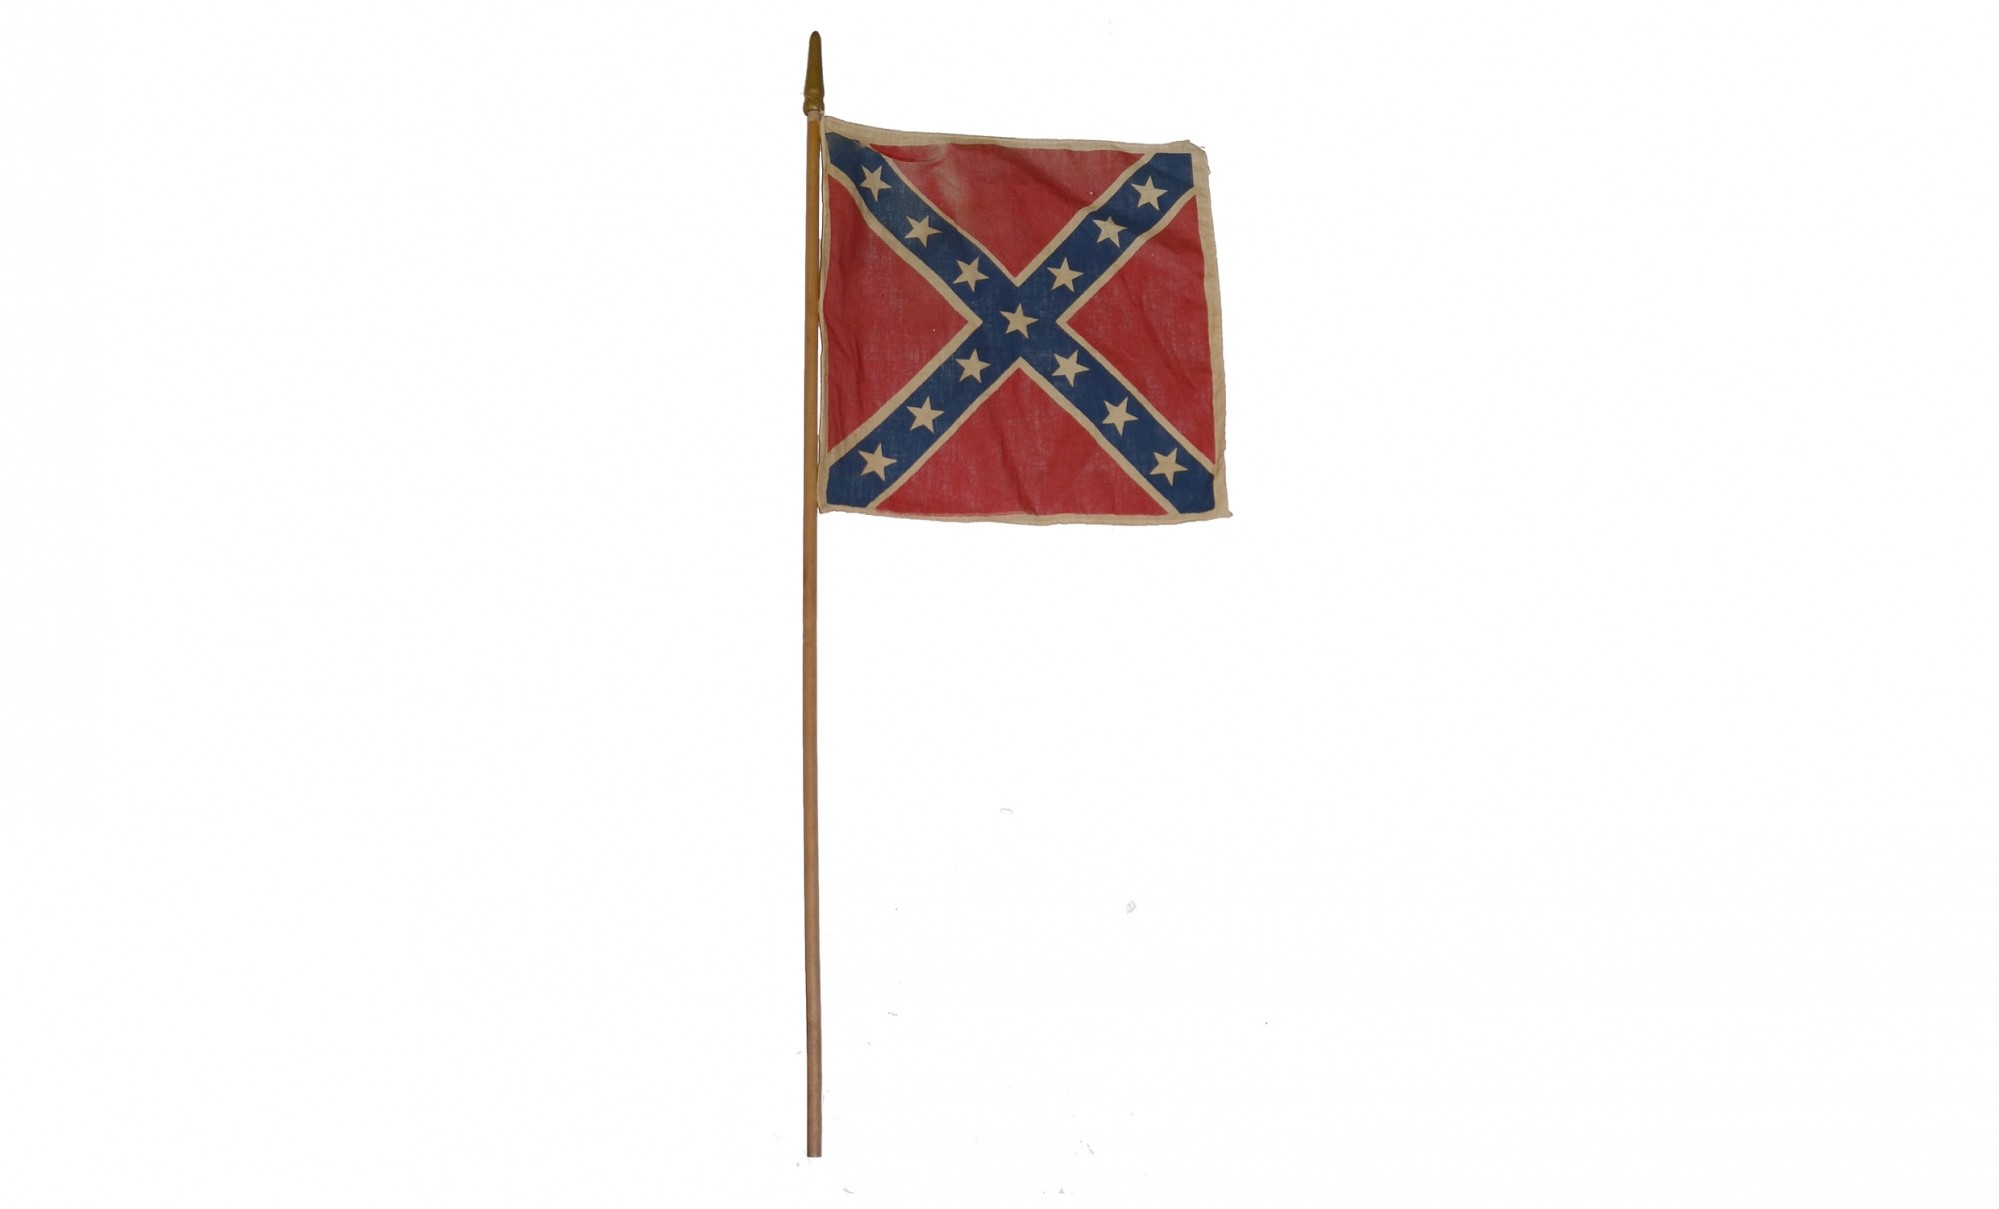 UDC MEMORIAL CONFEDERATE BATTLE FLAG